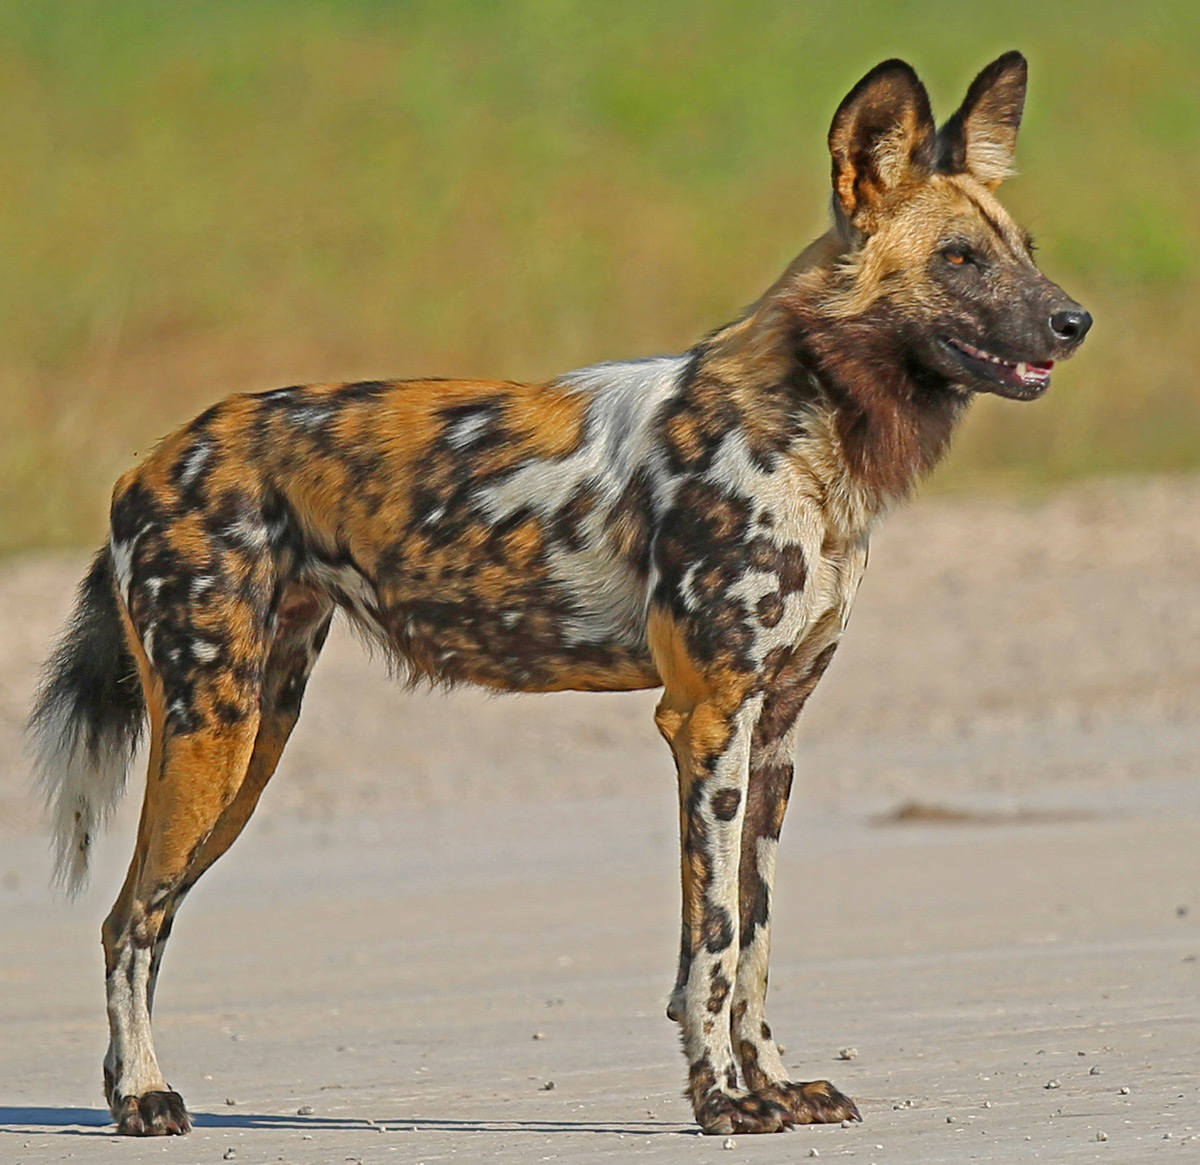 A painted wolf (African wild dog) with an unusually beautiful coat in Okavango Delta, Botswana © Anthony Goldman